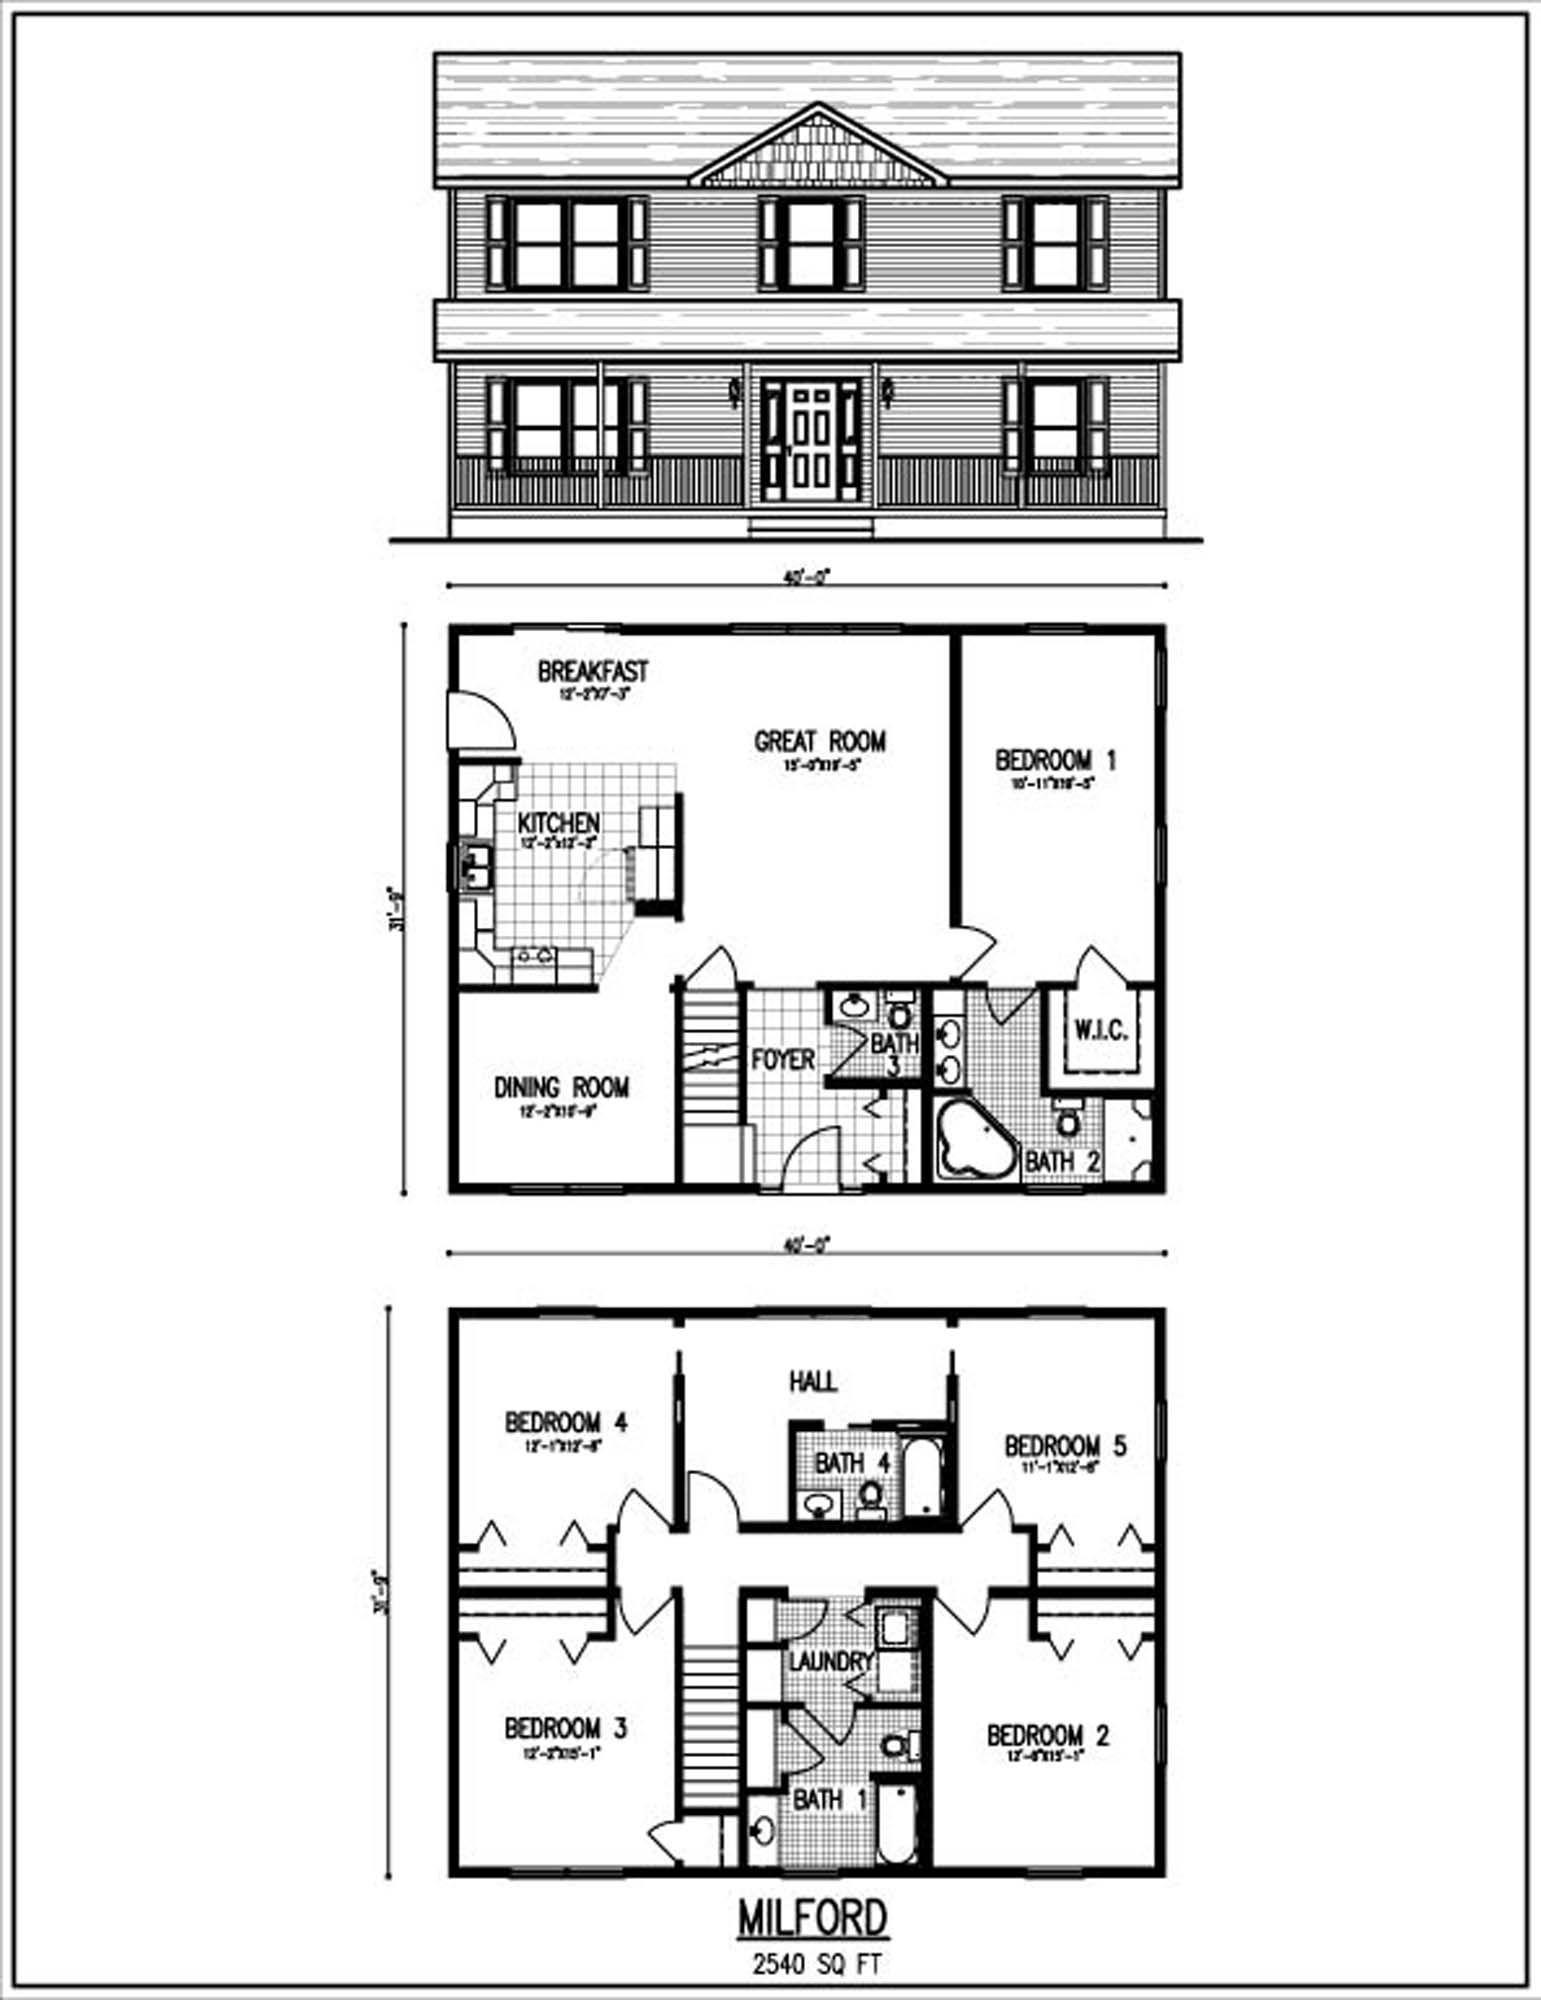 Beautiful 2 story house plans with upper level floor plan Two story house designs